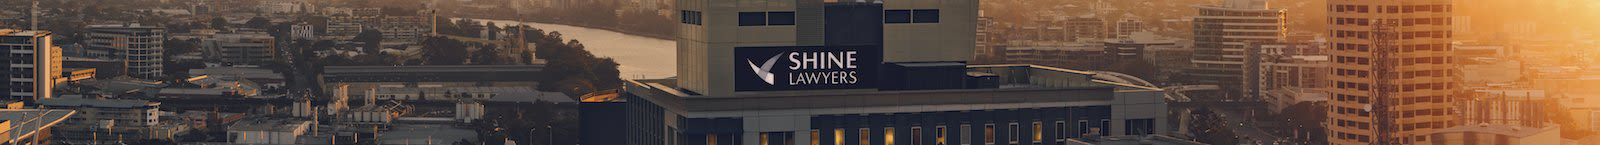 Shine Lawyers | Compensation at Shine Lawyers | Shine Lawyers